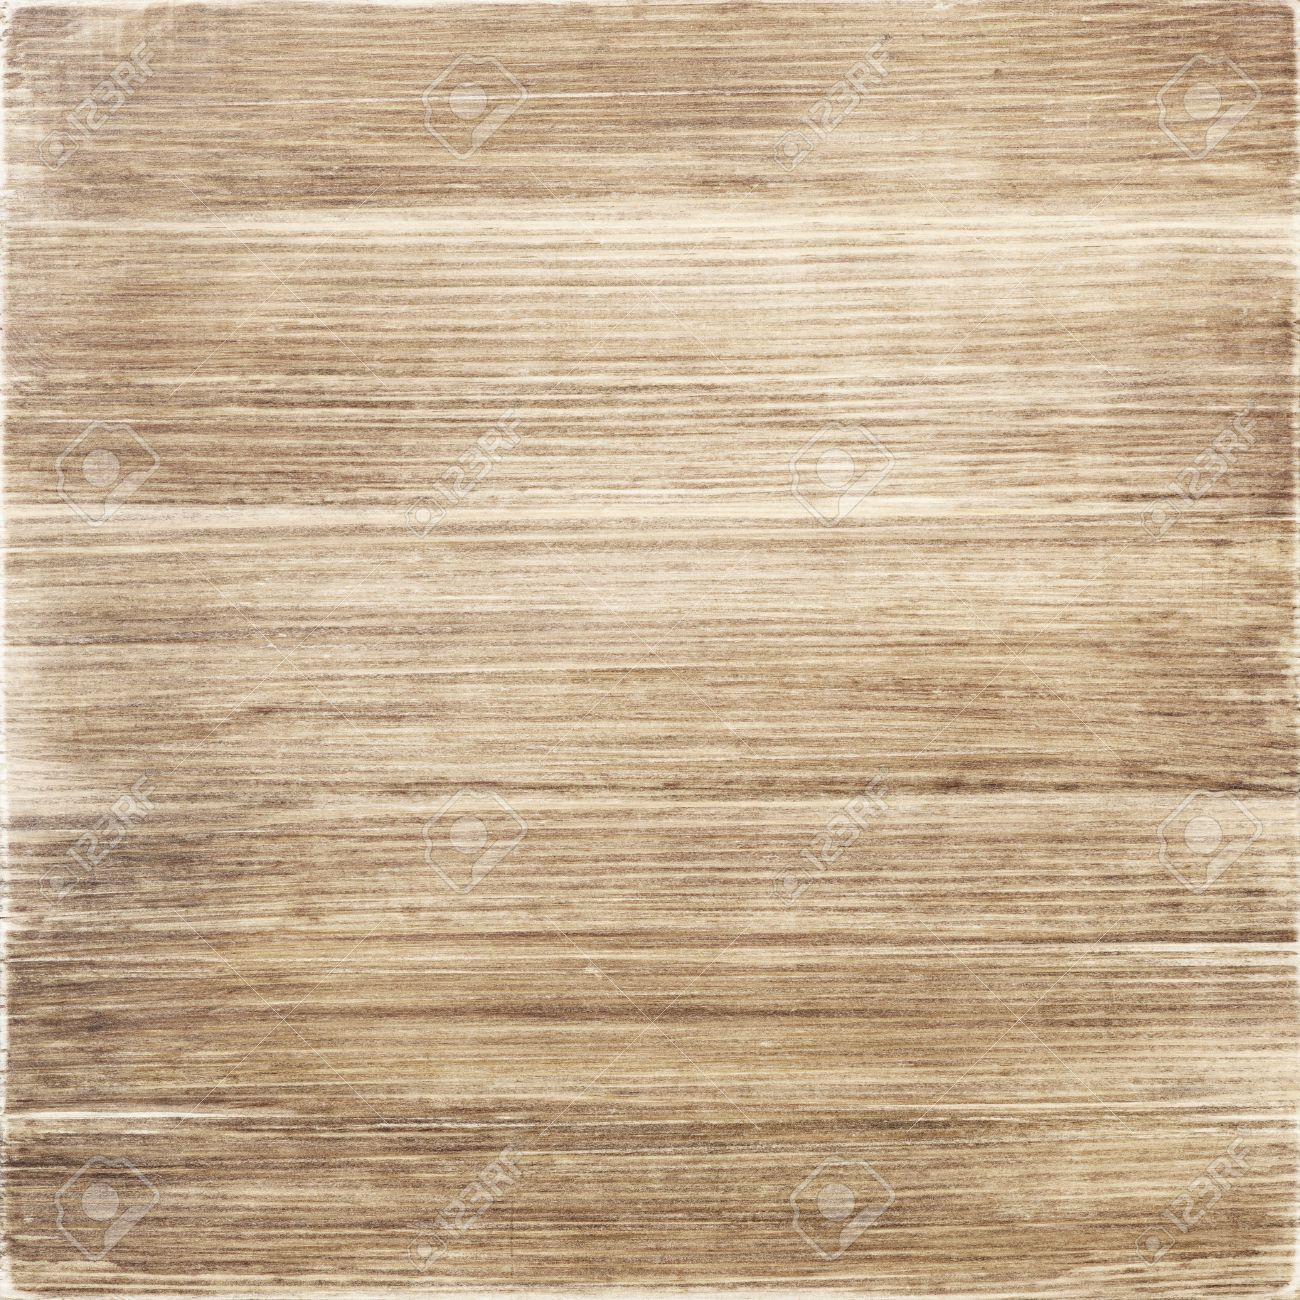 Wooden Texture Rustic Wood Background Stock Photo Picture And Royalty Free Image Image 53616527 Feel free to download it and share your concepts with this effect through your. wooden texture rustic wood background